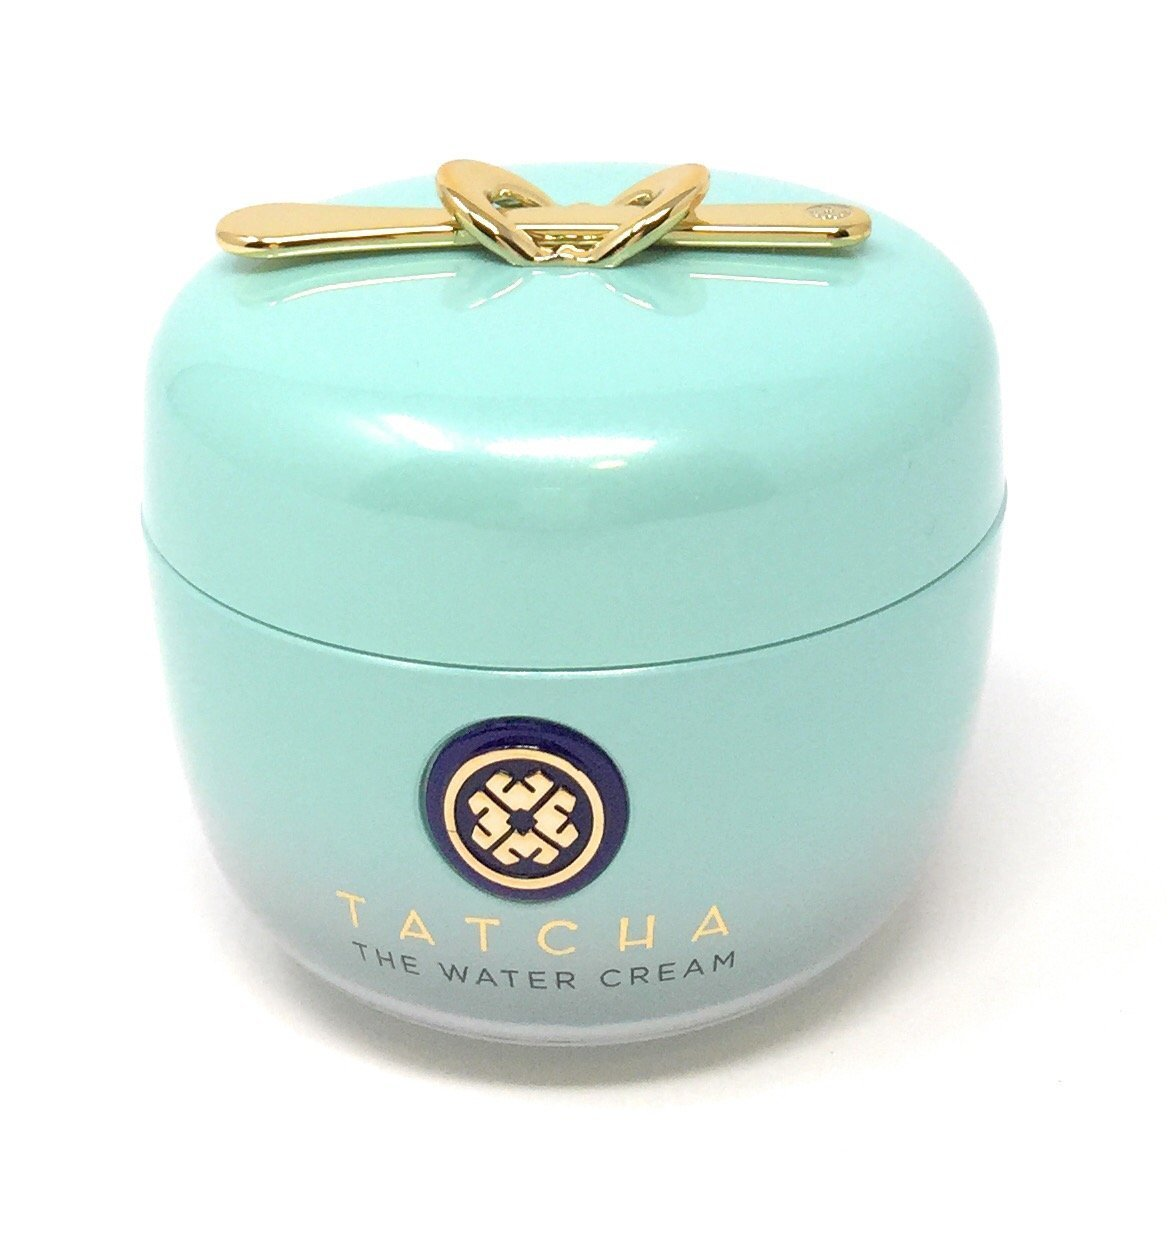 Tatcha The Water Cream - Glumech